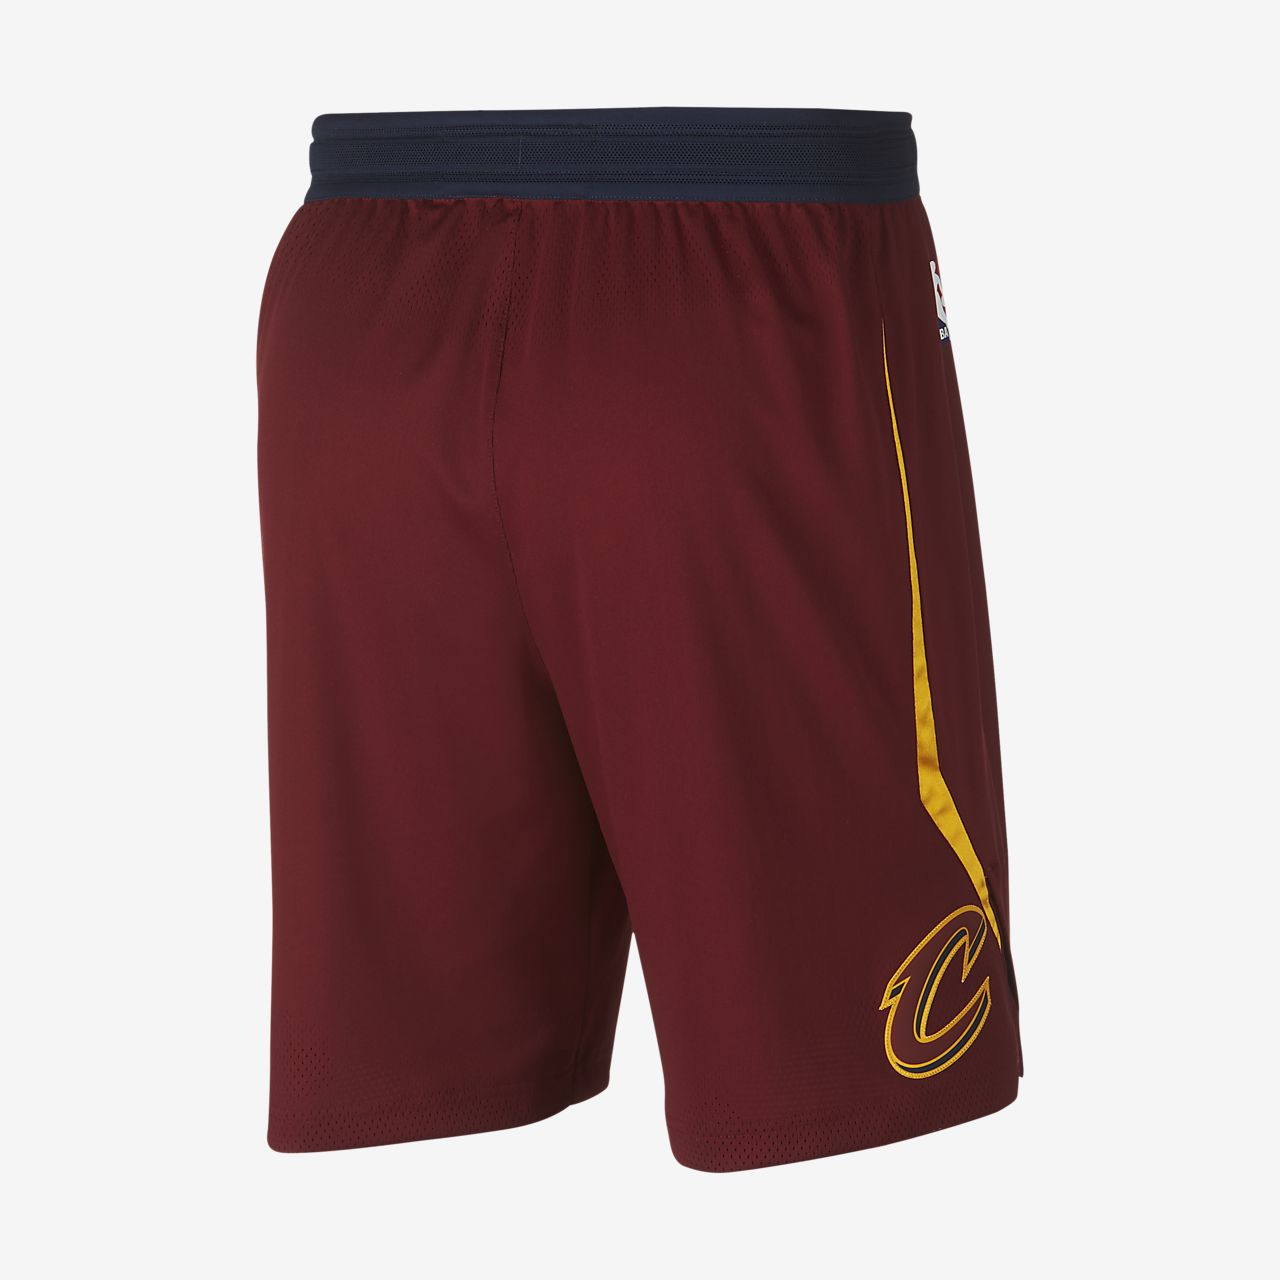 eba6a3db3 Cleveland Cavaliers Nike Icon Edition Authentic Men s NBA Shorts ...